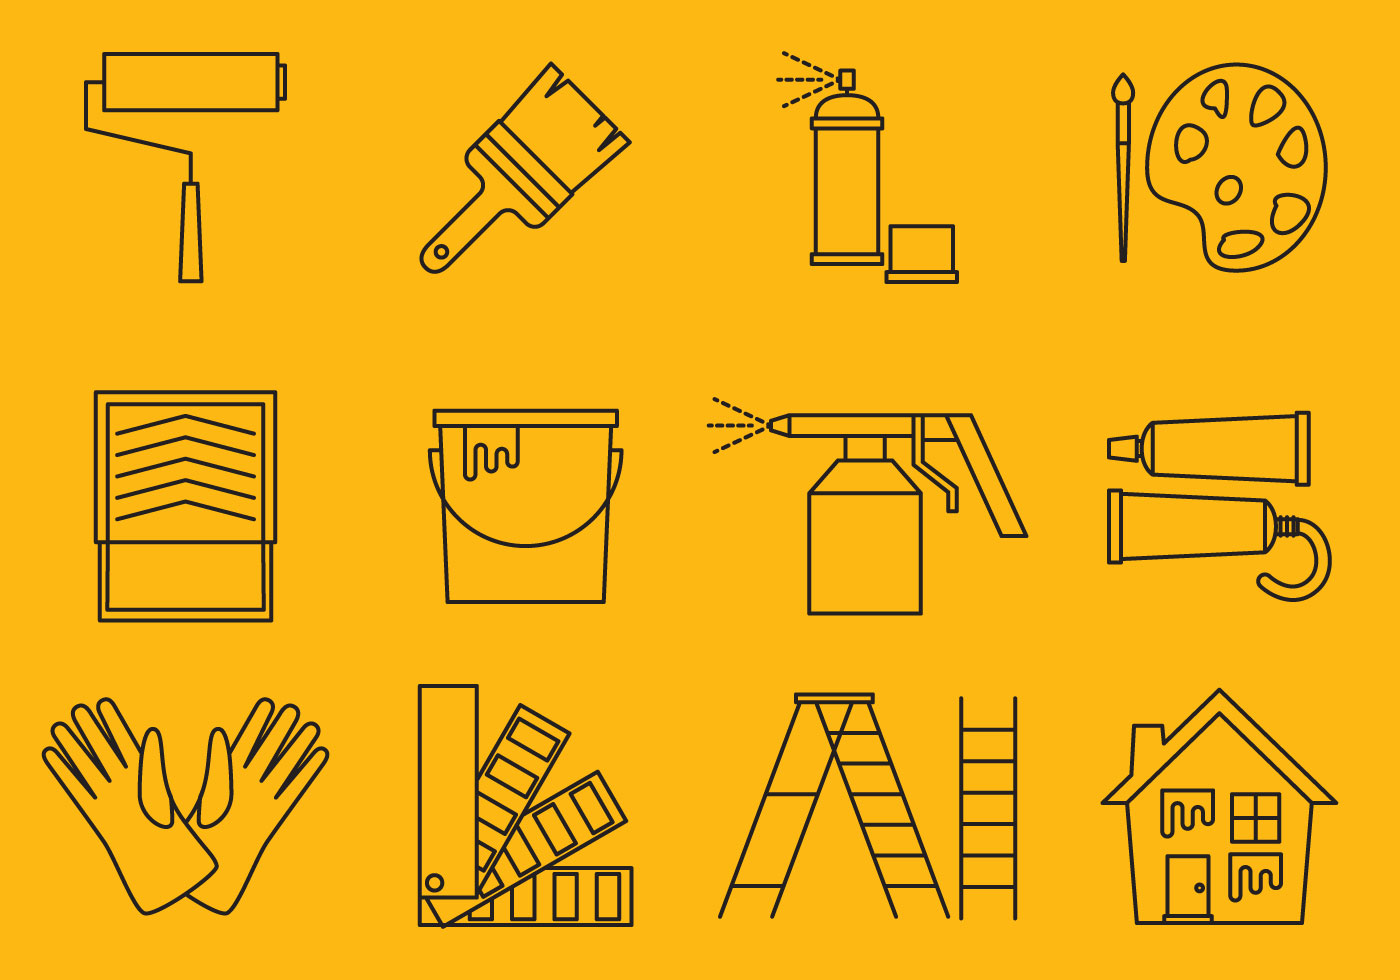 Line Art Icons Free : Painting line icons download free vector art stock